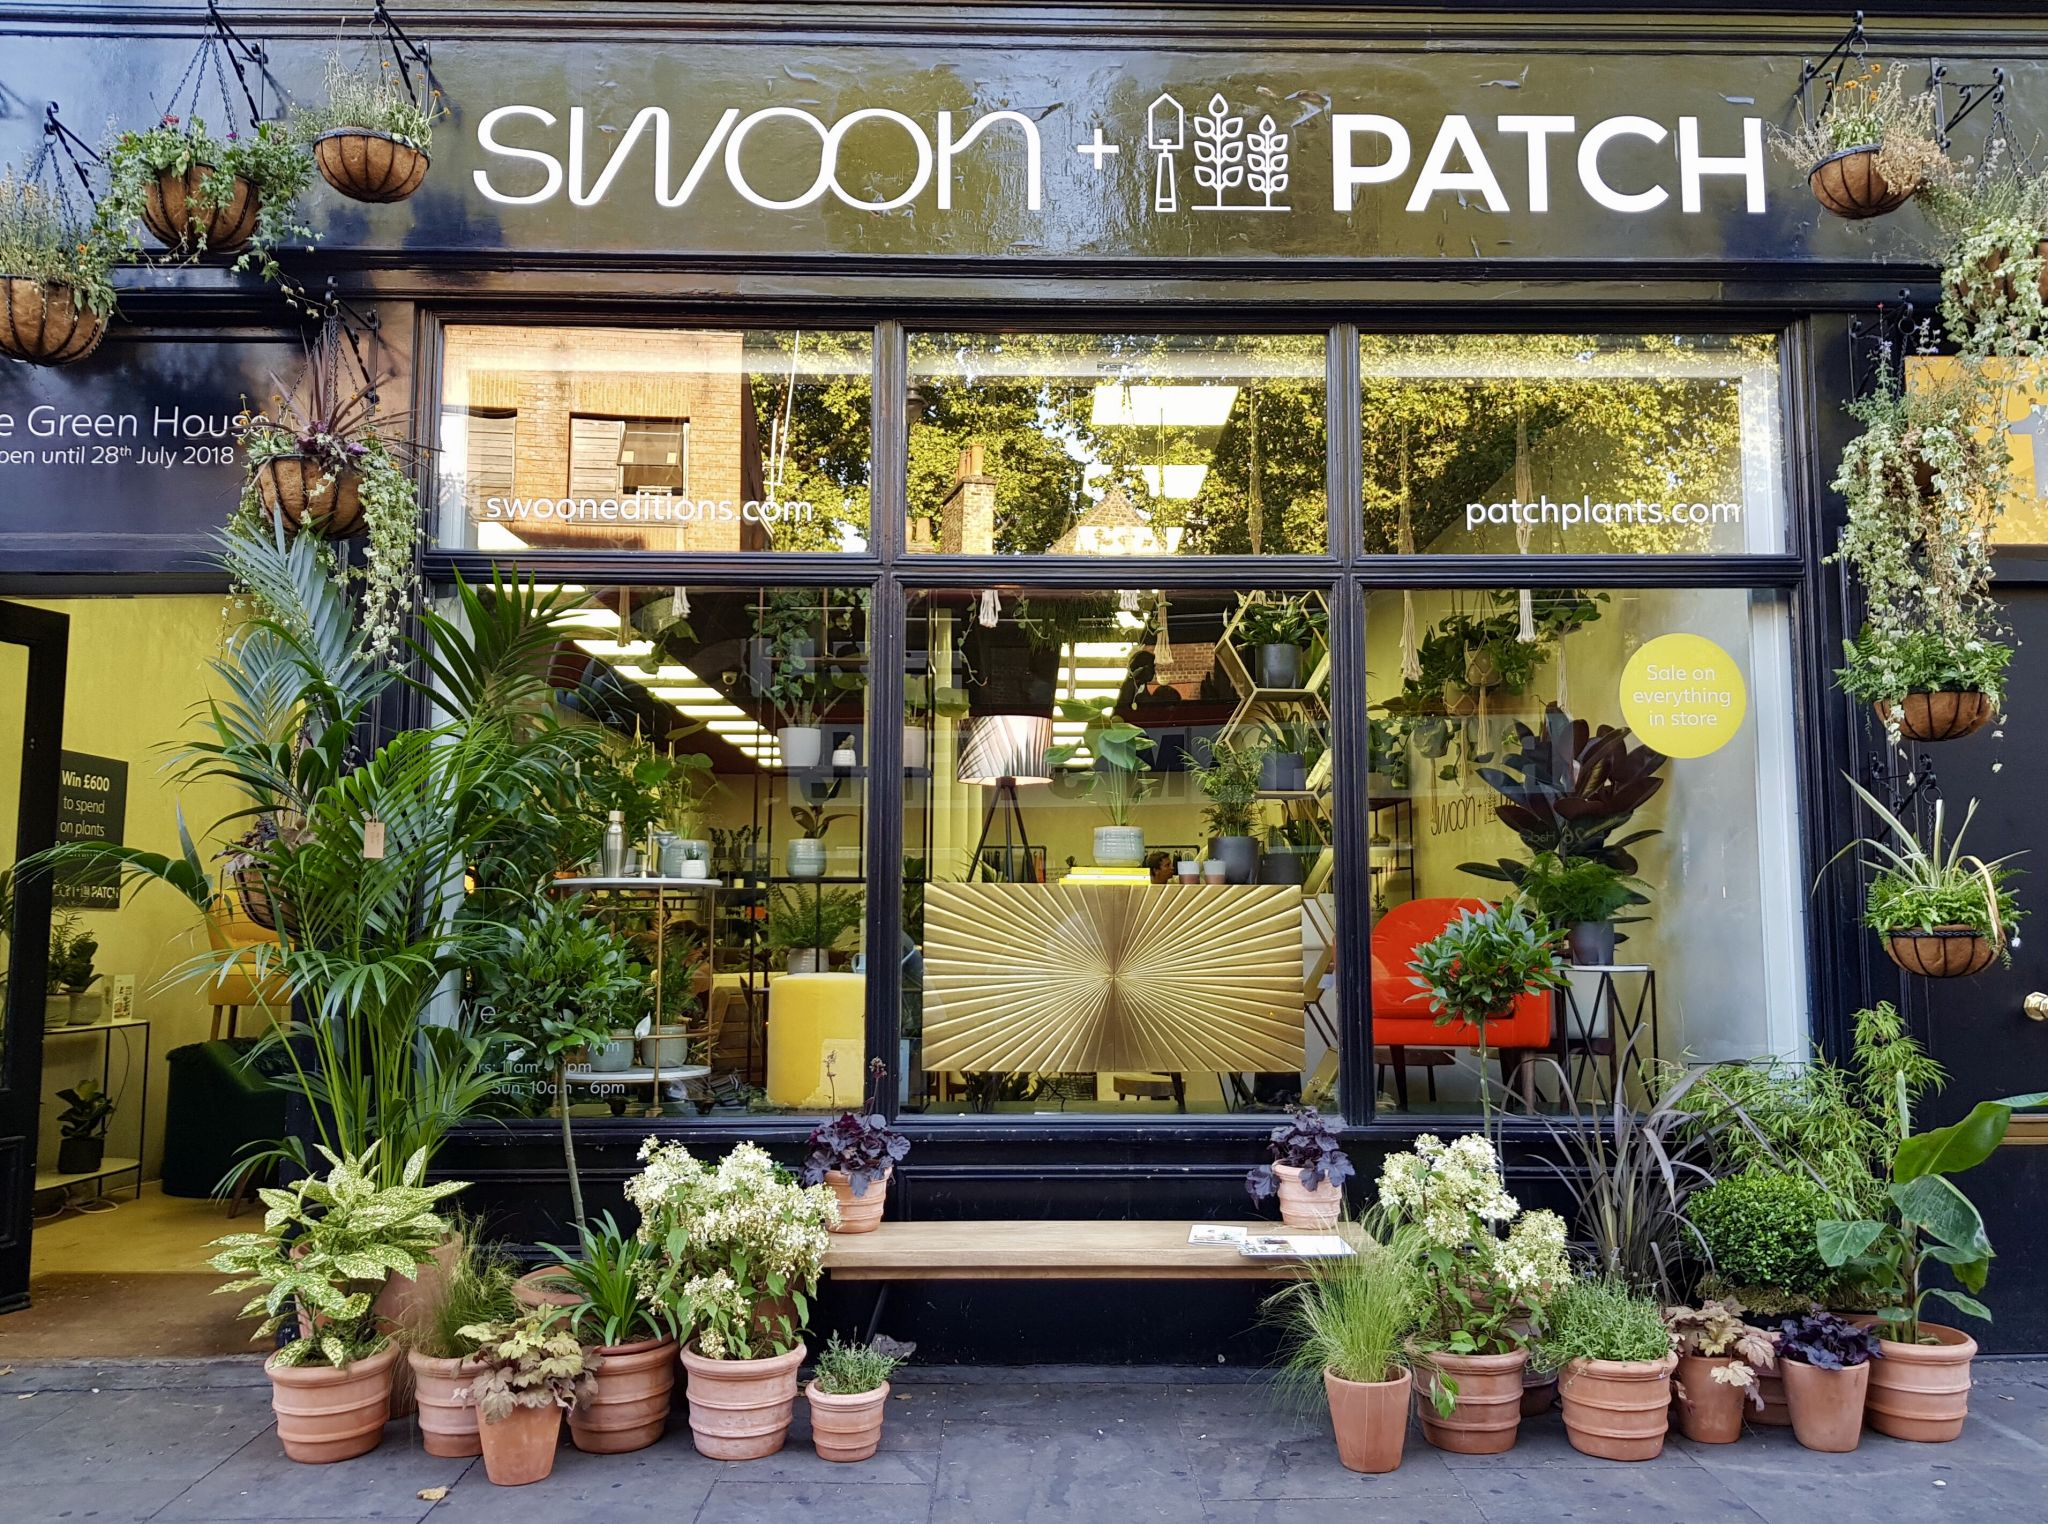 Swoon Edition x Patch Plants pop up